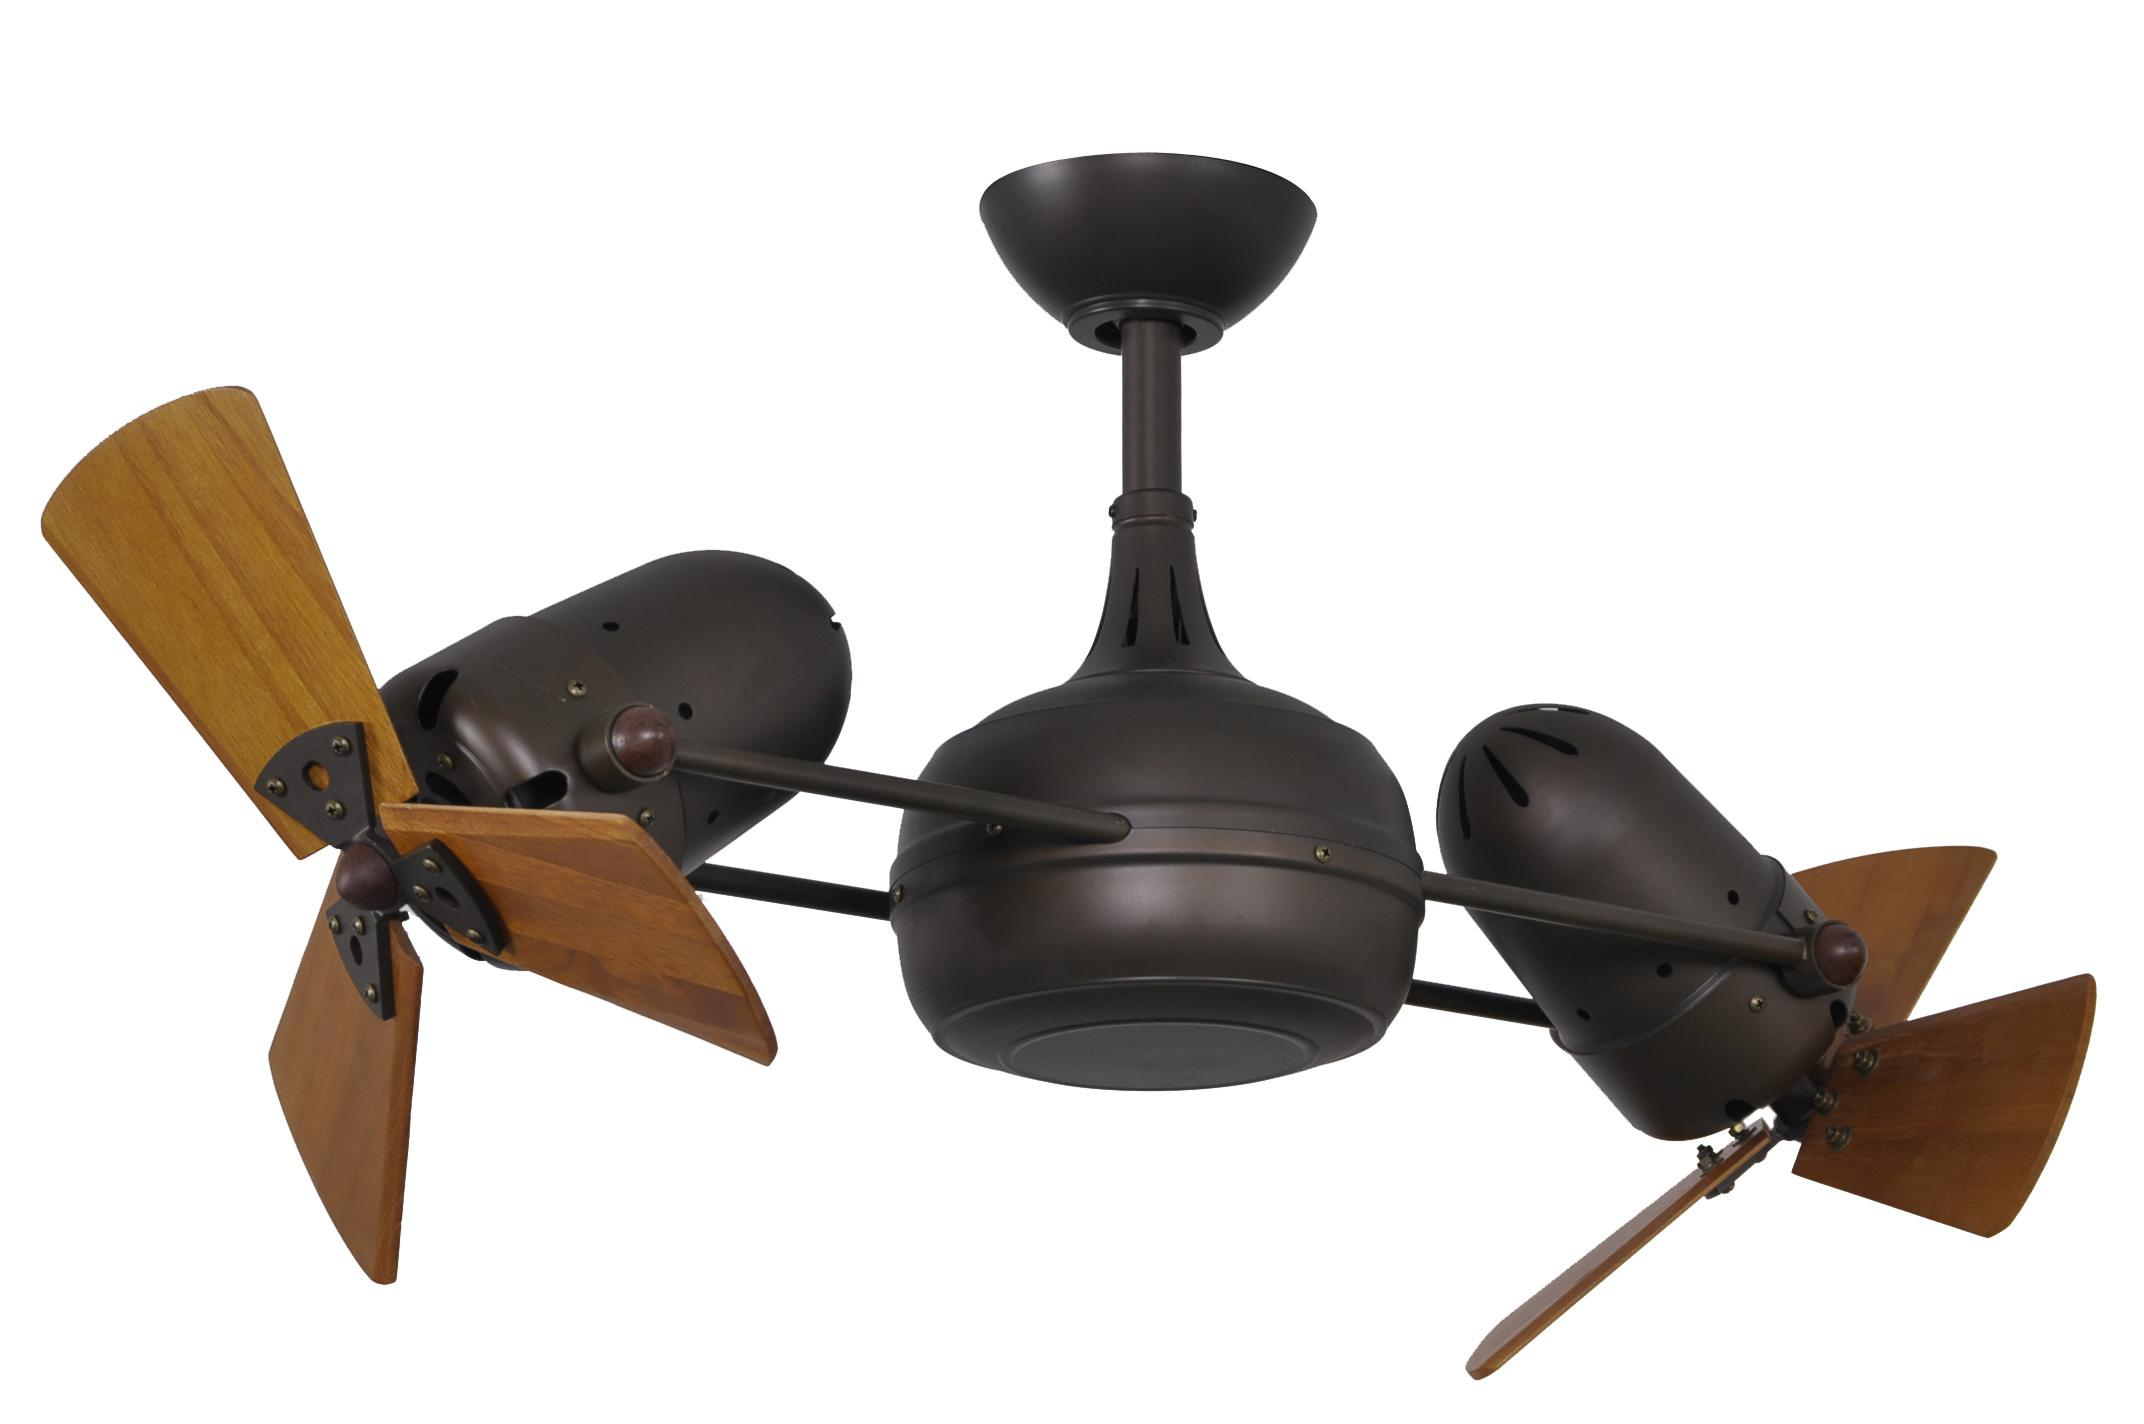 Double Paddle Ceiling Fans Harbor Breeze Double Ceiling Fan 13 Efficiencies In